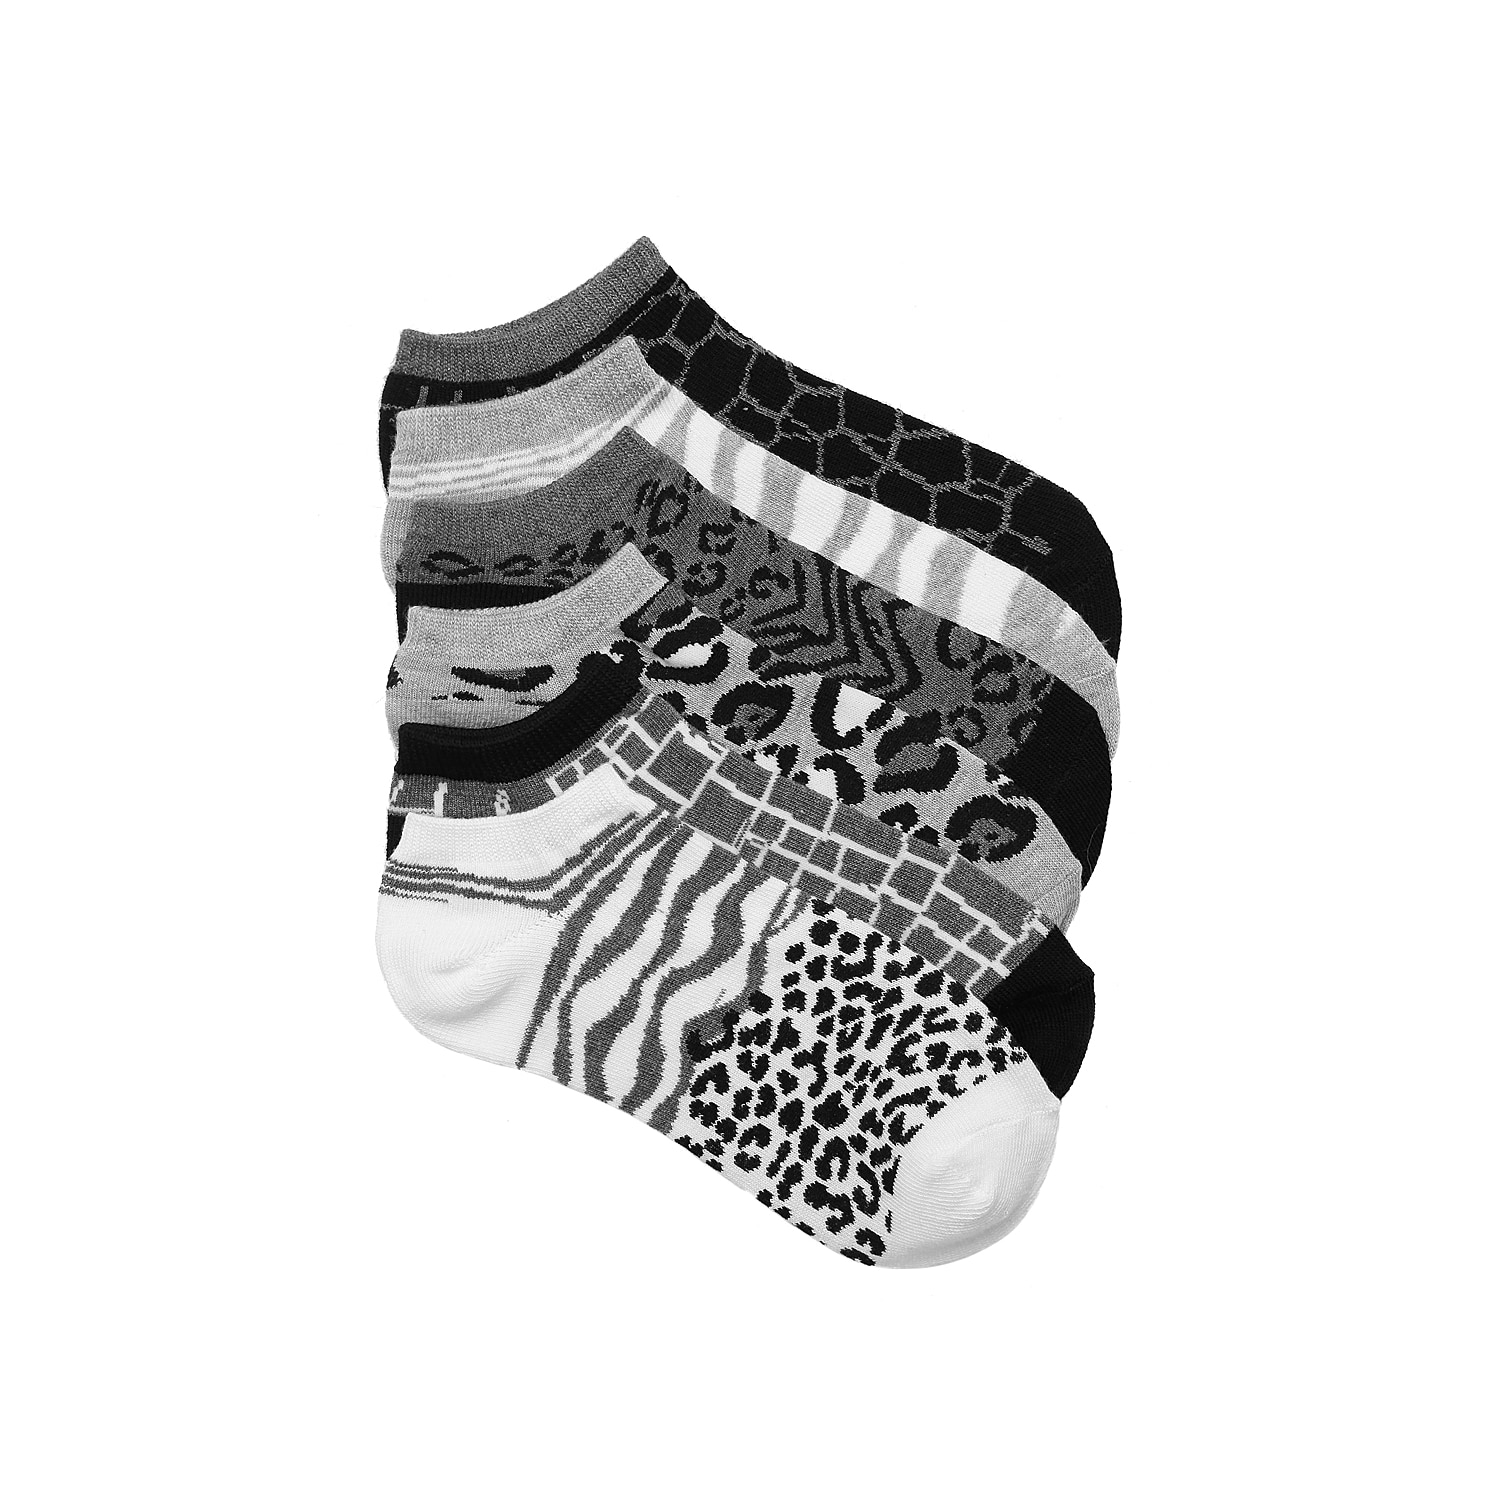 These animal print no show socks from Mix No. 6 are bold, fun and stylish! Pick a favorite from this assorted 6 pack and wear them alone or with your favorite sneakers!